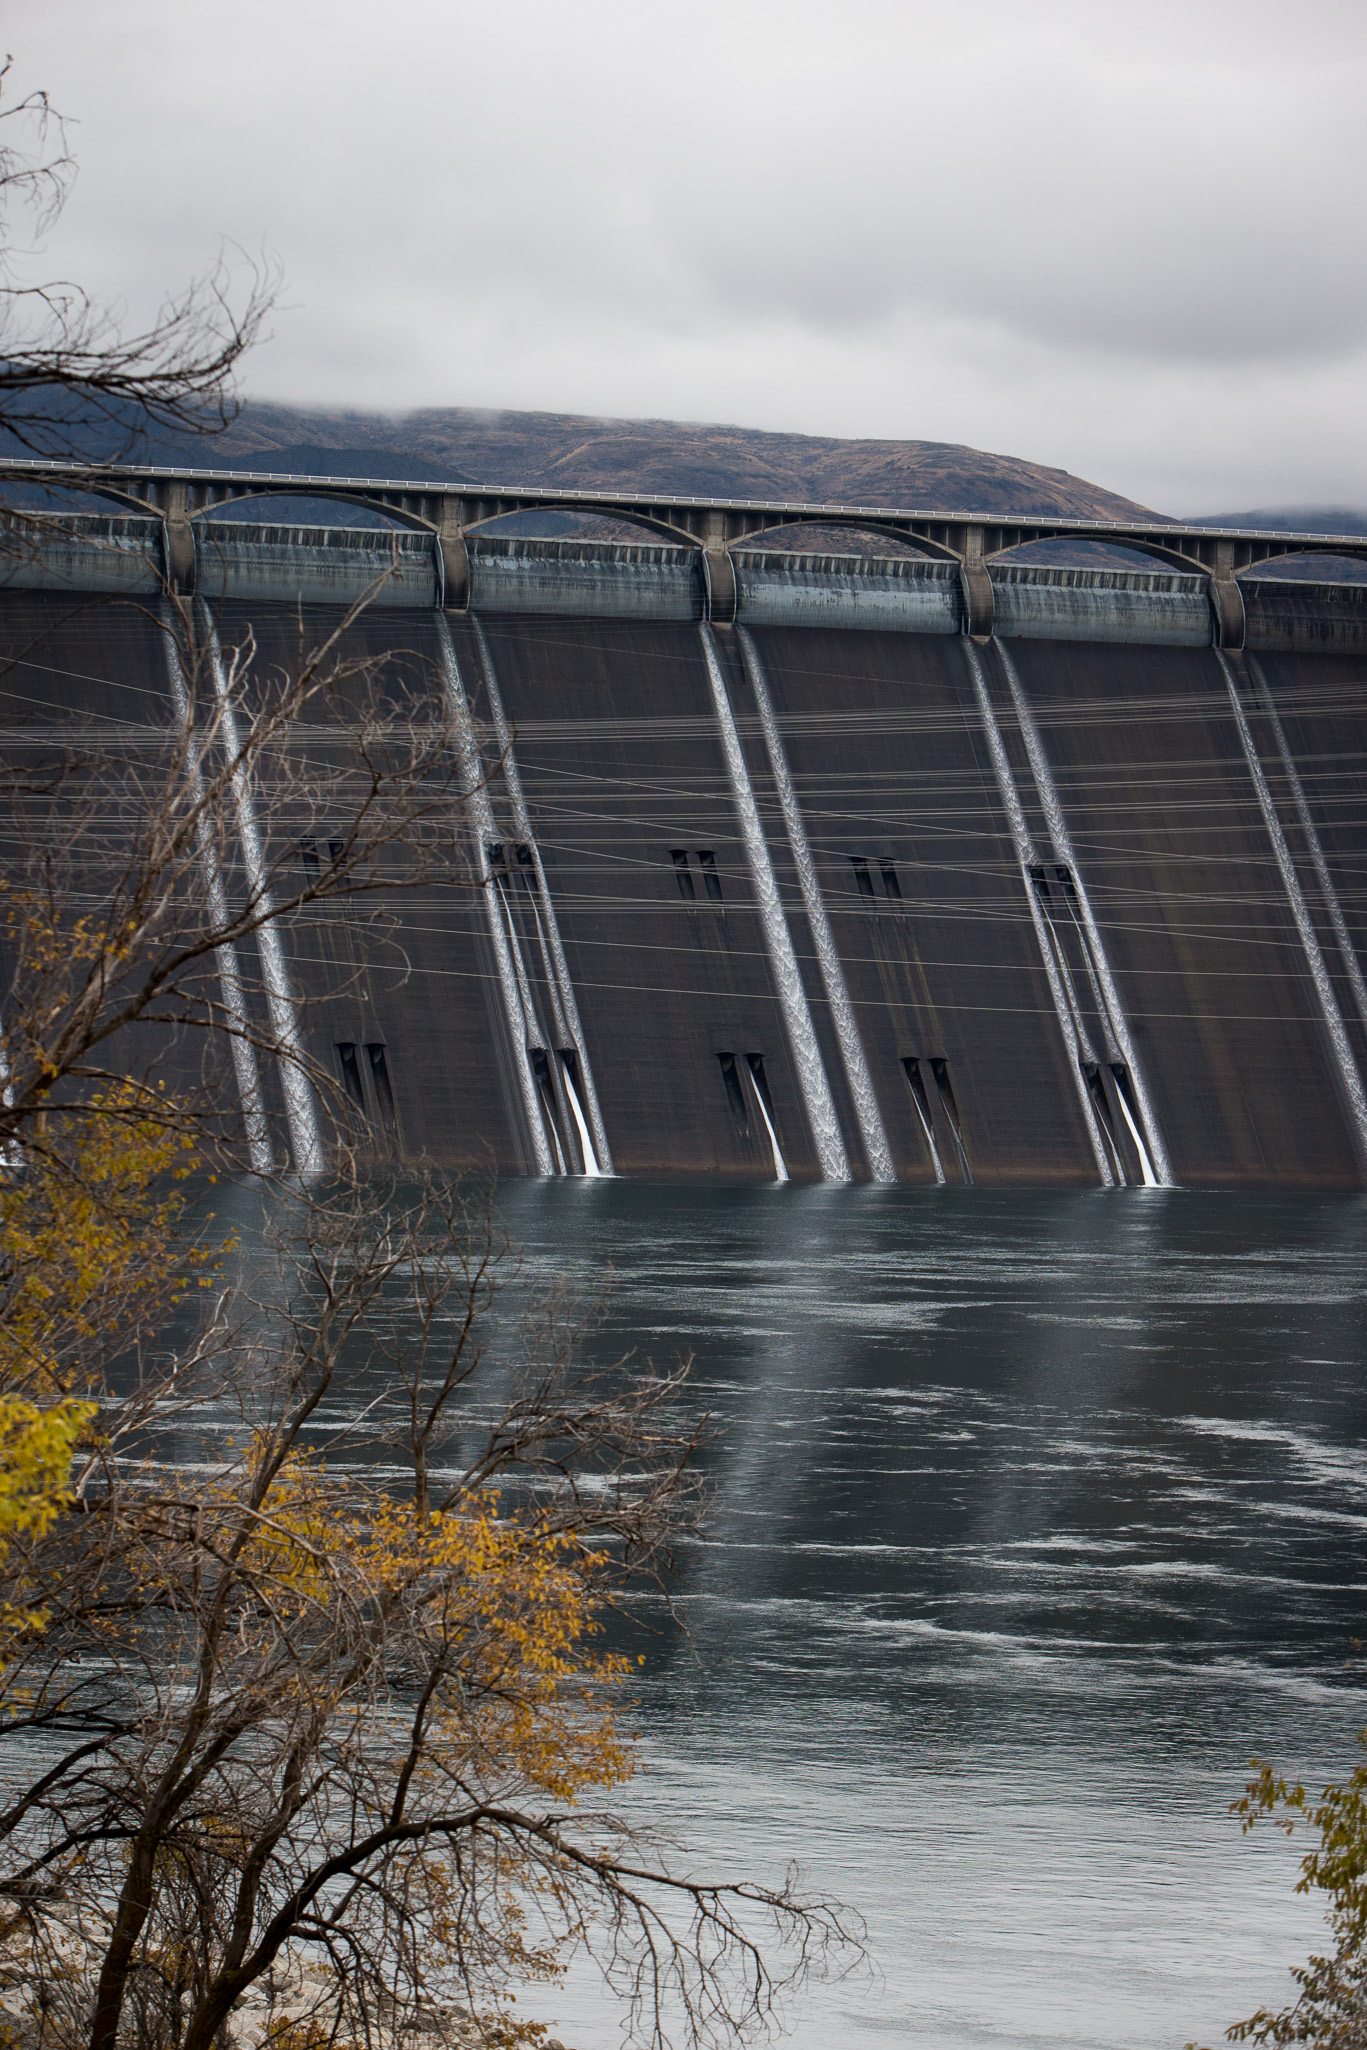 Coulee Dam, WA - November 10th, 2013: The Grand Coulee Dam began operating in 1942 and is one of the world's largest concrete structures.  Over a mile long when constructed it had a peak workforce of 7,700 and took a little over 9 years to complete.  In 1941 Woody Guthrie worked for the Bonneville Power Administration (the federal agency created to sell and distribute power from the river's federal hydroelectric facilities, in particular the Bonneville Dam and Grand Coulee Dam) for a single month, creating 26 or so songs called the Columbia River Ballads, including a song devoted to the dam called 